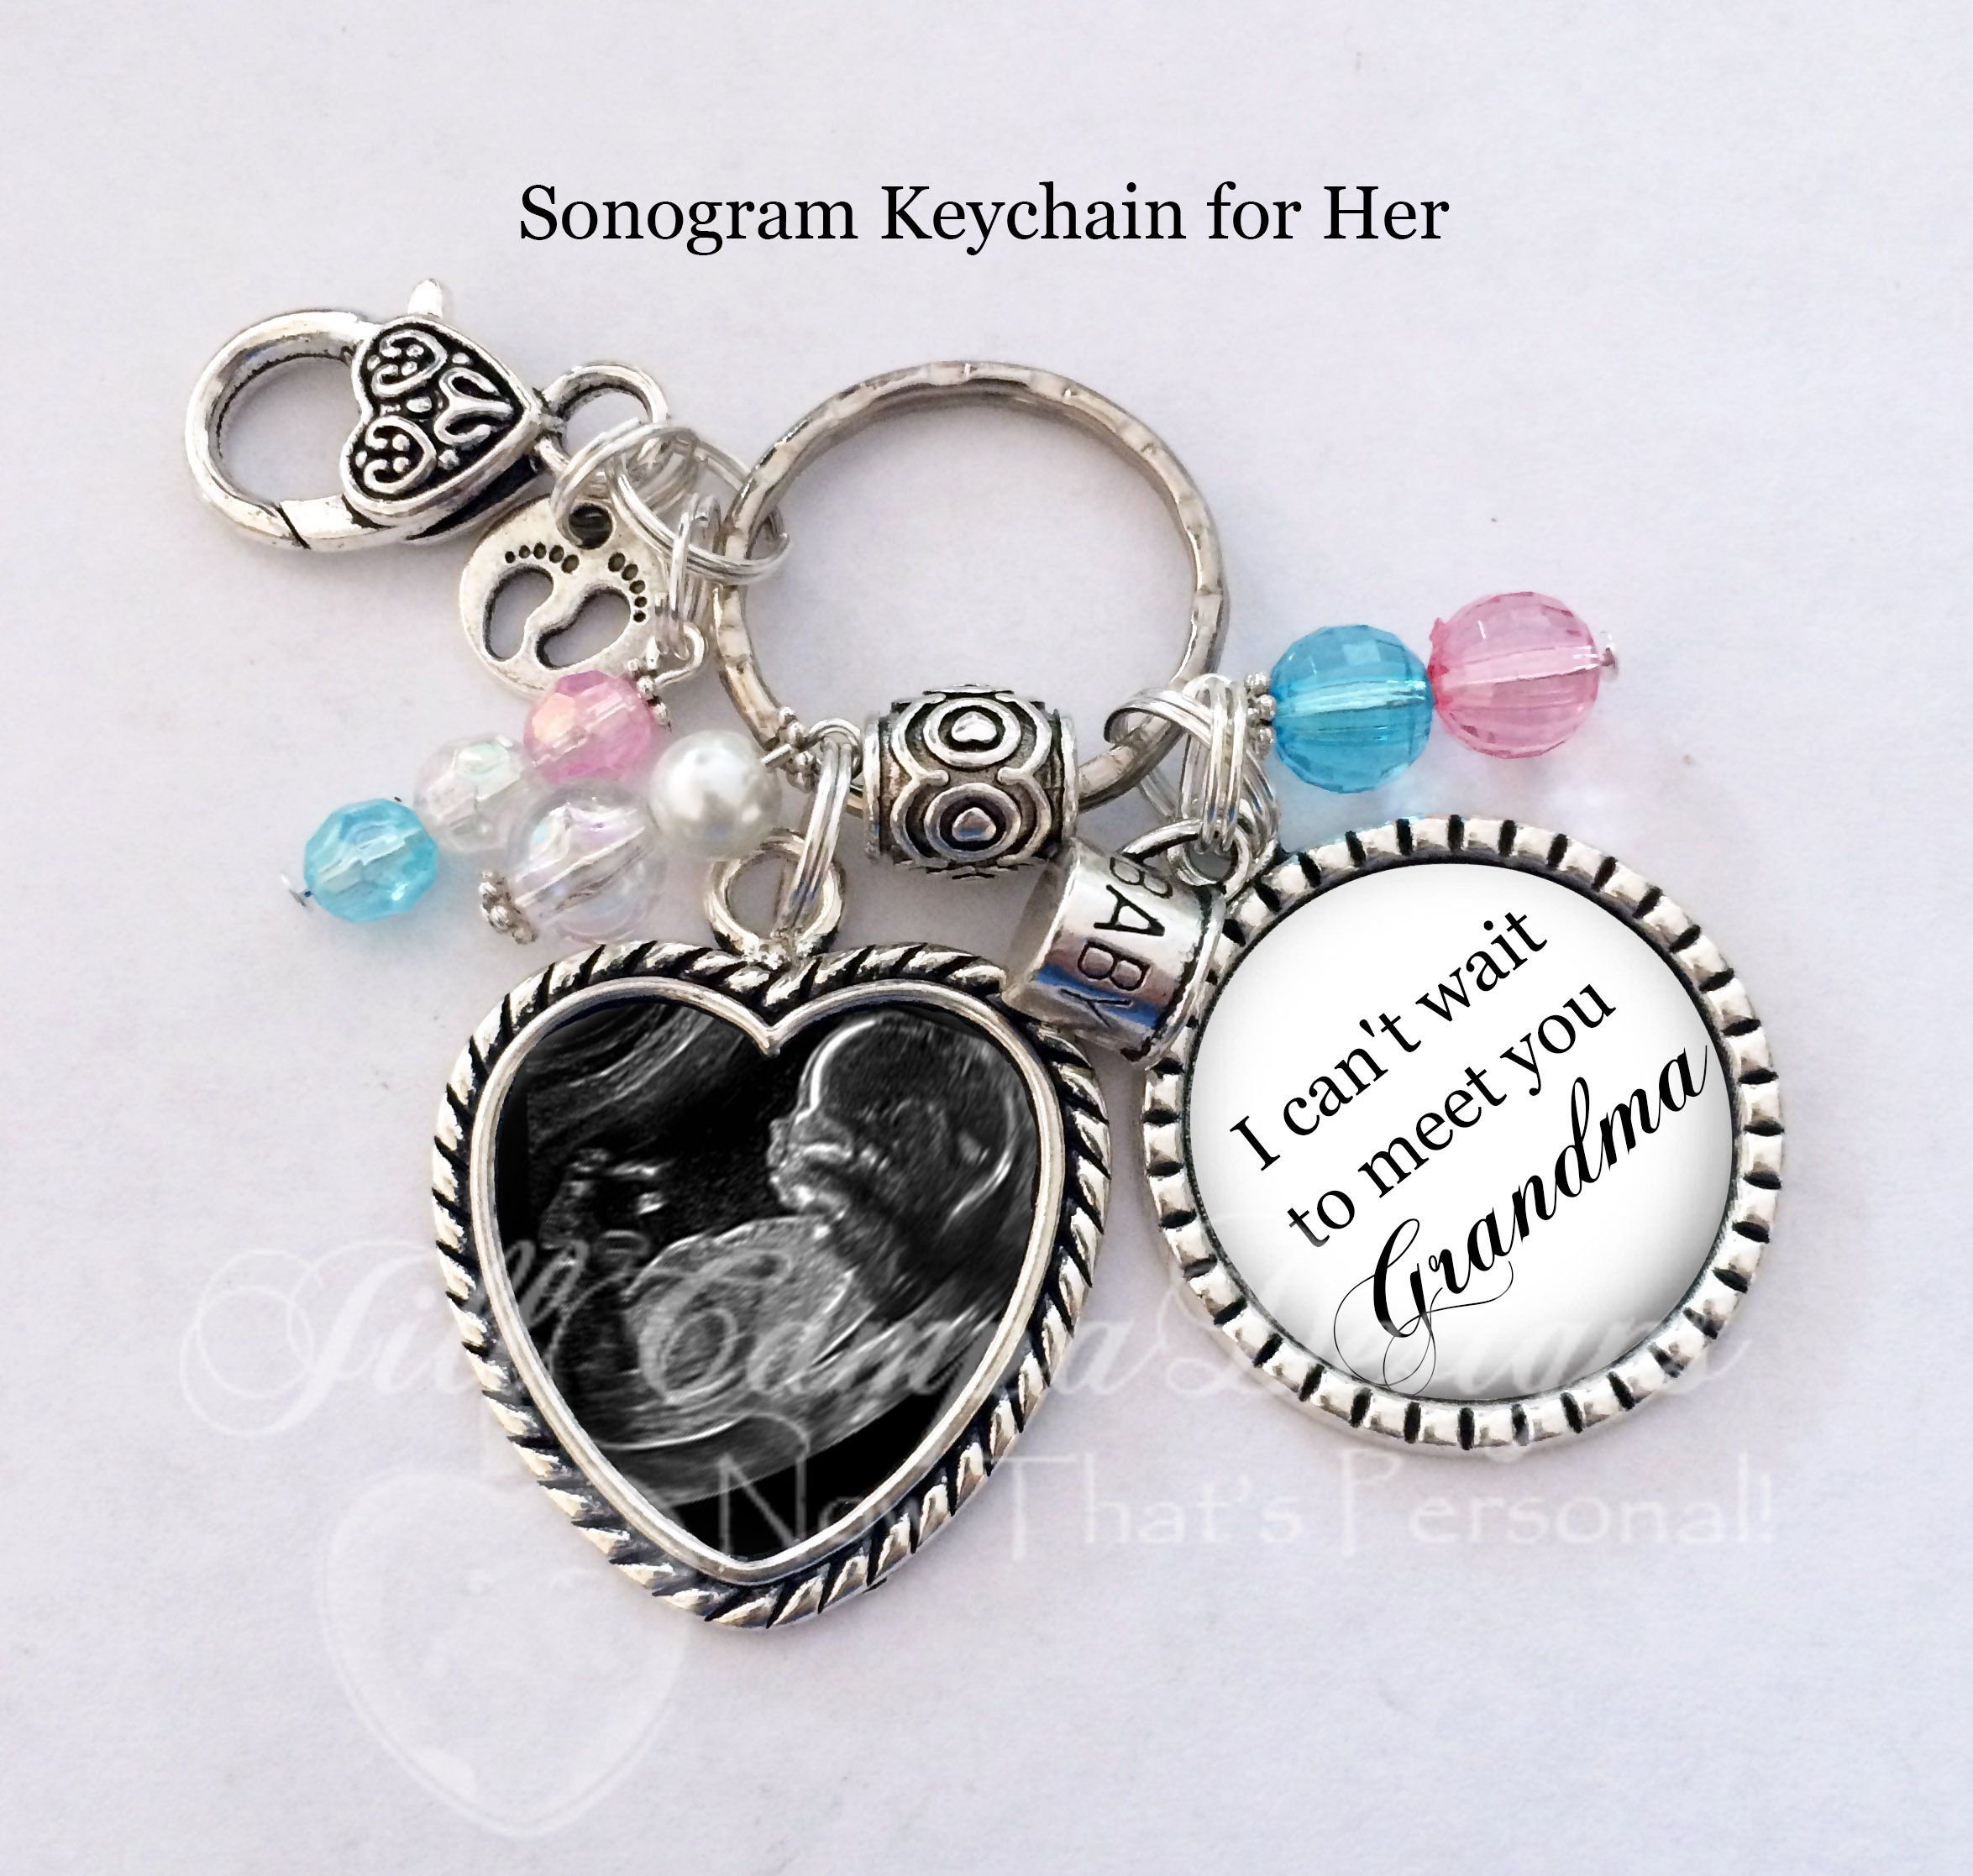 Sonogram Keychain  for her